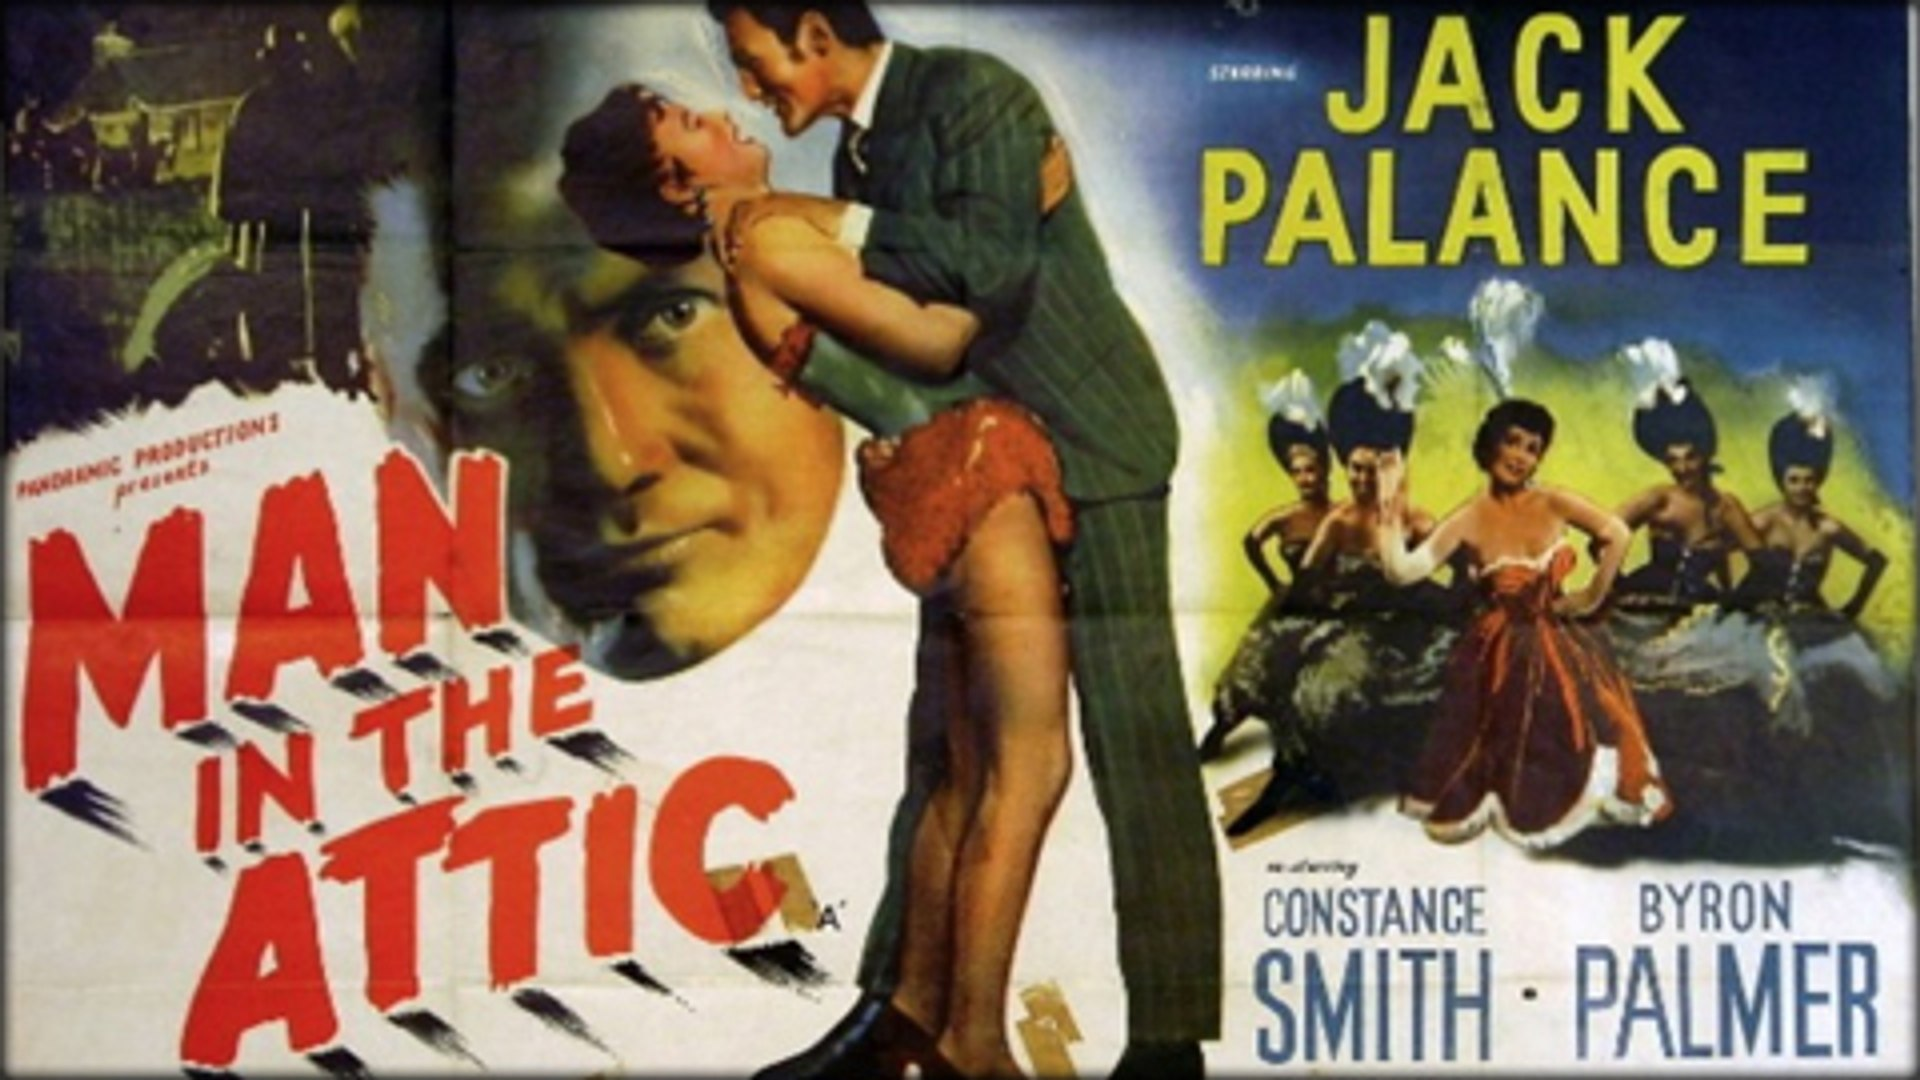 Man in the Attic (1953) - Jack Palance, Constance Smith, Byron Palmer -  Feature (Film-Noir, Mystery, Thriller)